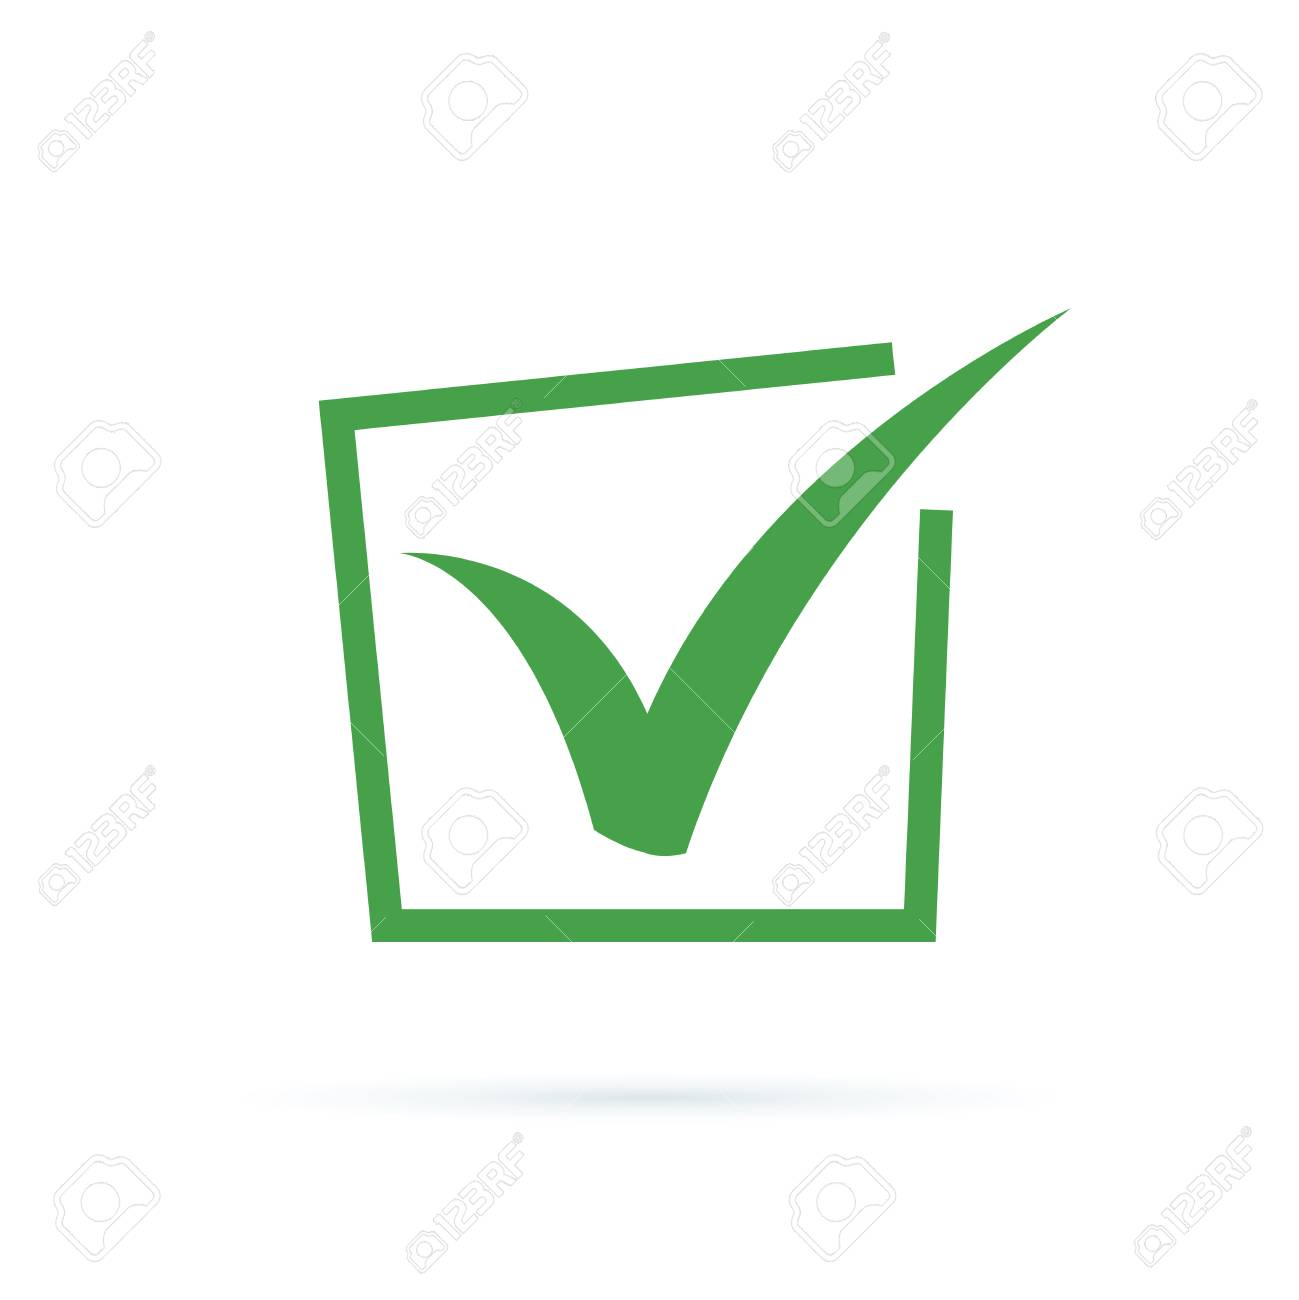 Black check mark icon. Tick symbol, tick icon vector illustration. Flat OK sticker icon. Isolated on white. Accept button. Good for web and software interfaces. Checkmark vector vote, choice, success - 125945291